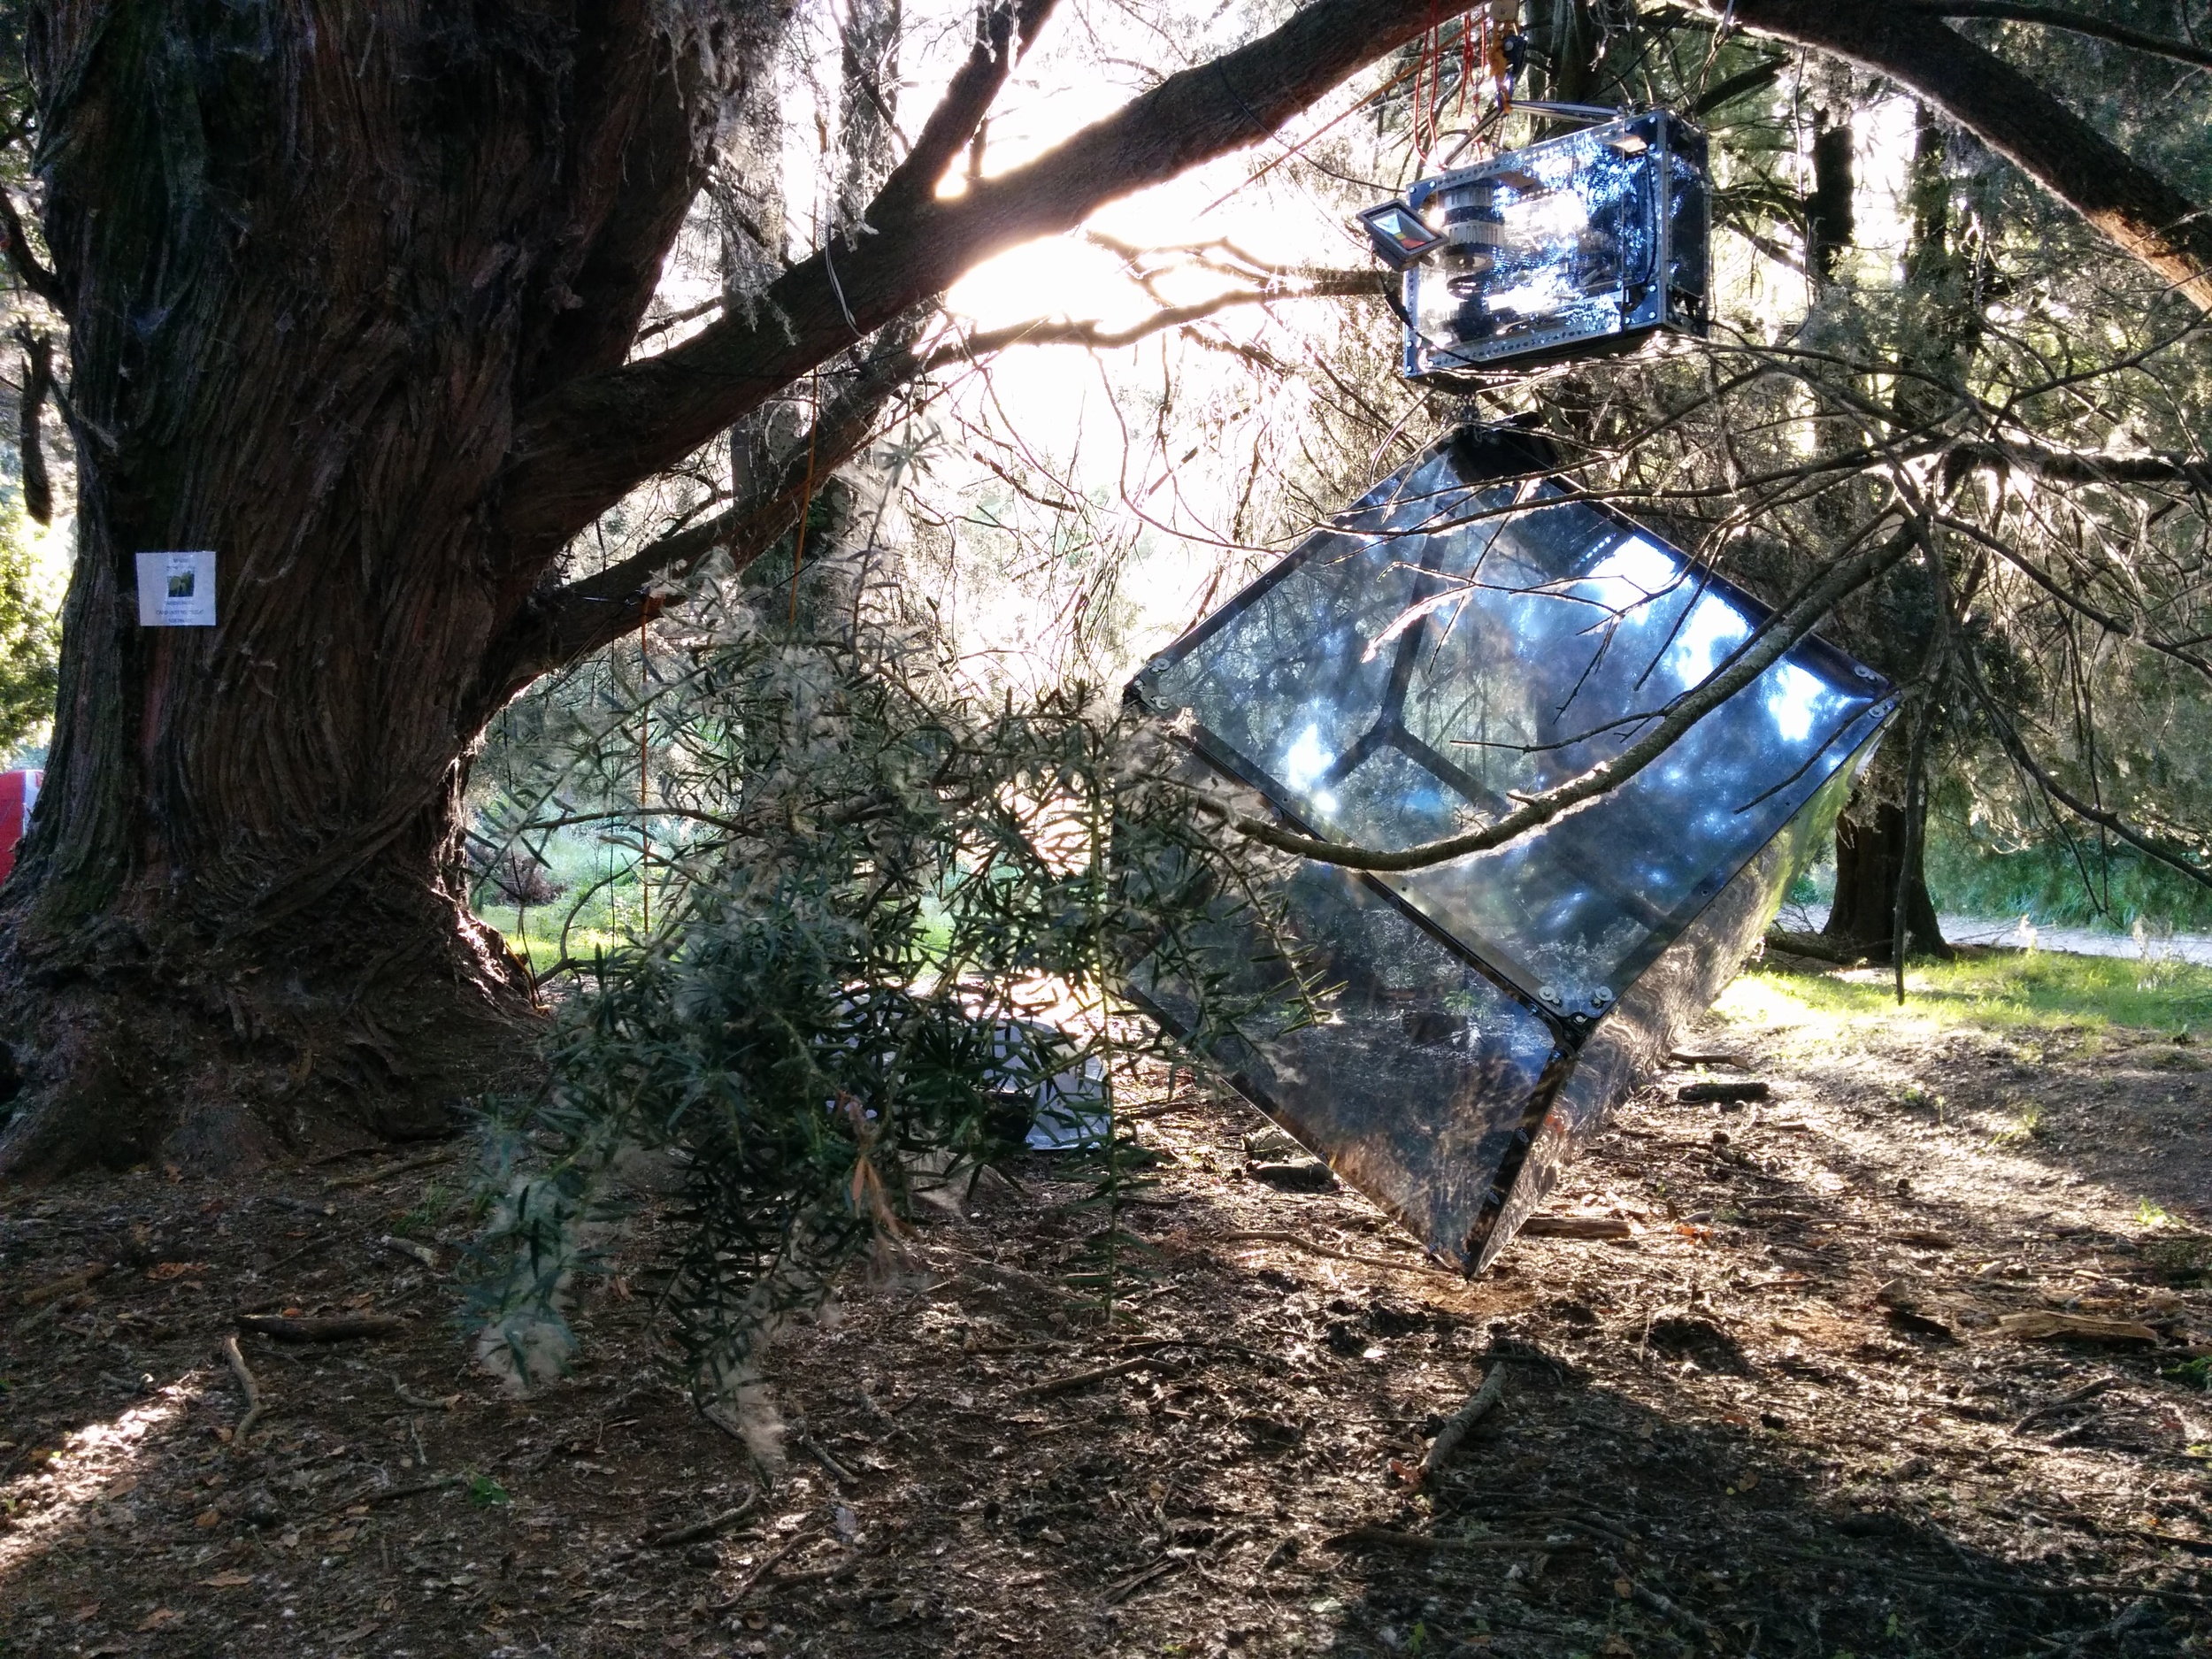 Yashoda with a clear view of 'Iron Man' during daylight at Kiwiburn Festival. Here, the sculpture was adapted to run exclusively on solar power.